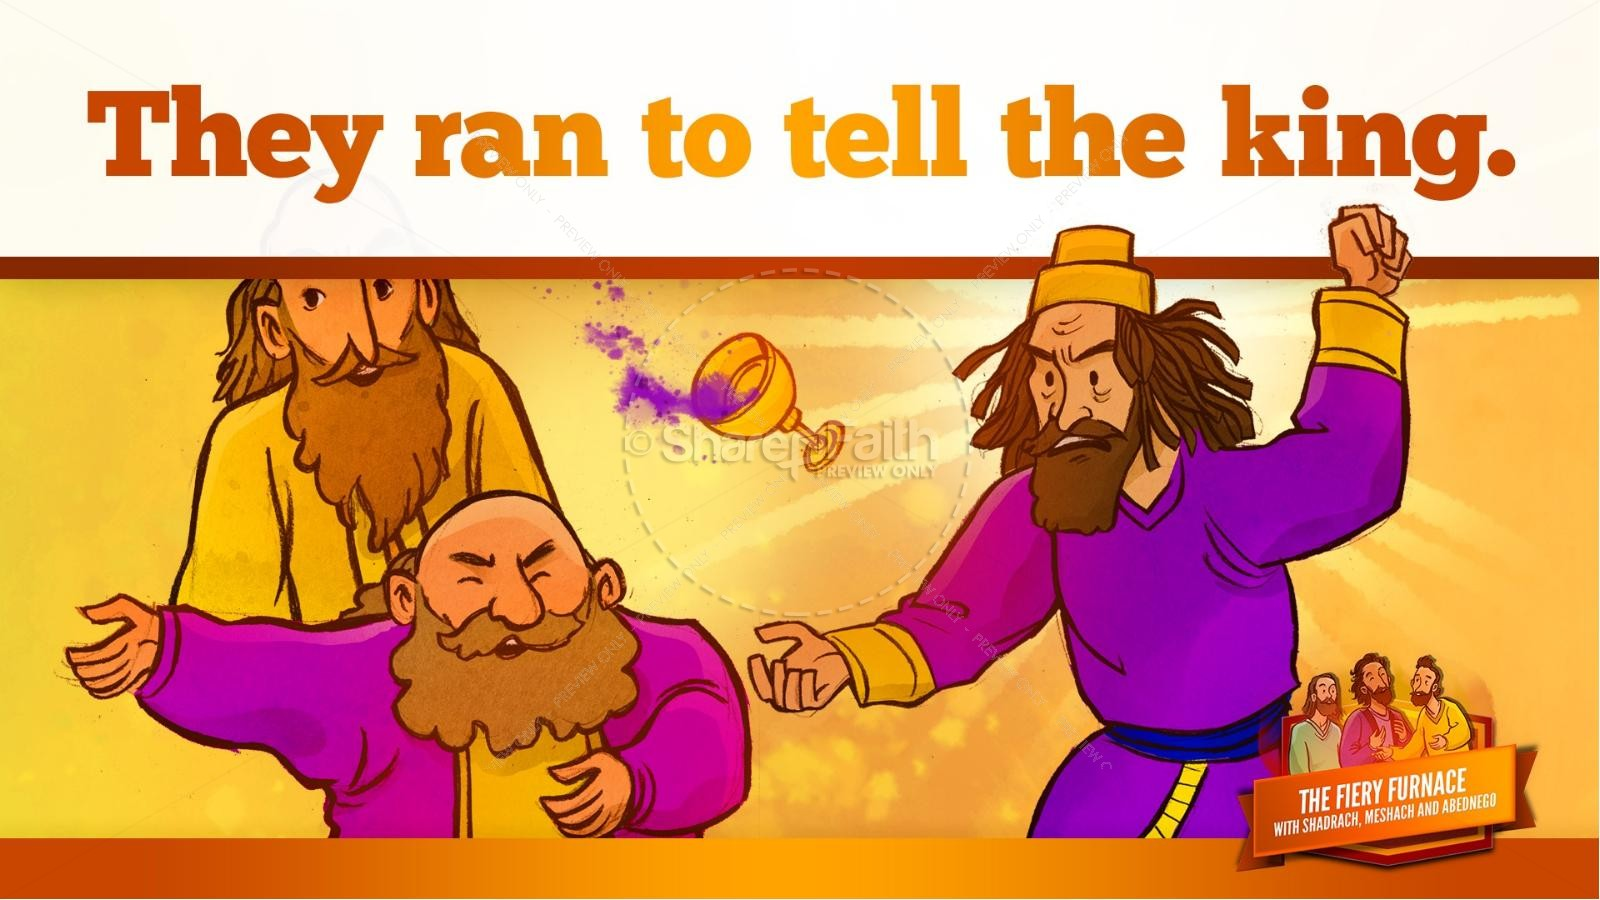 The Fiery Furnace with Shadrach, Meshach and Abednego Kids Bible Story | slide 41